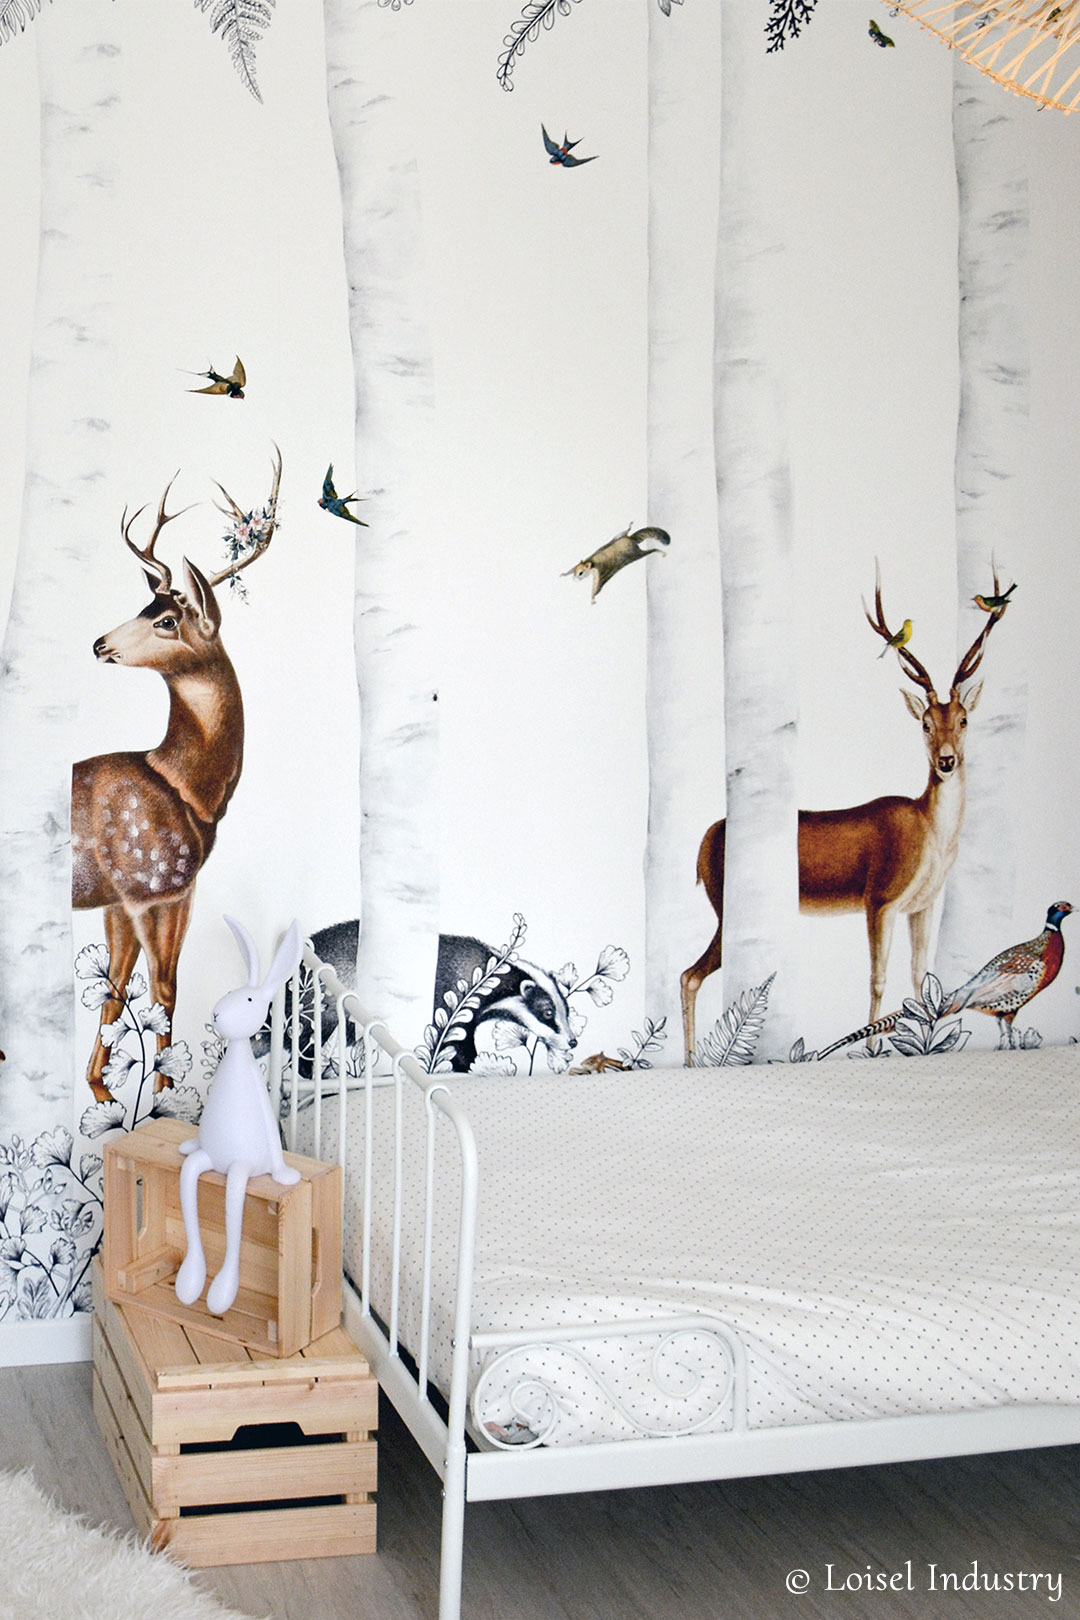 Wallpaper for kid's room - Forest animals - Woody Chesnut from Les Dominotiers - © Loisel Industry